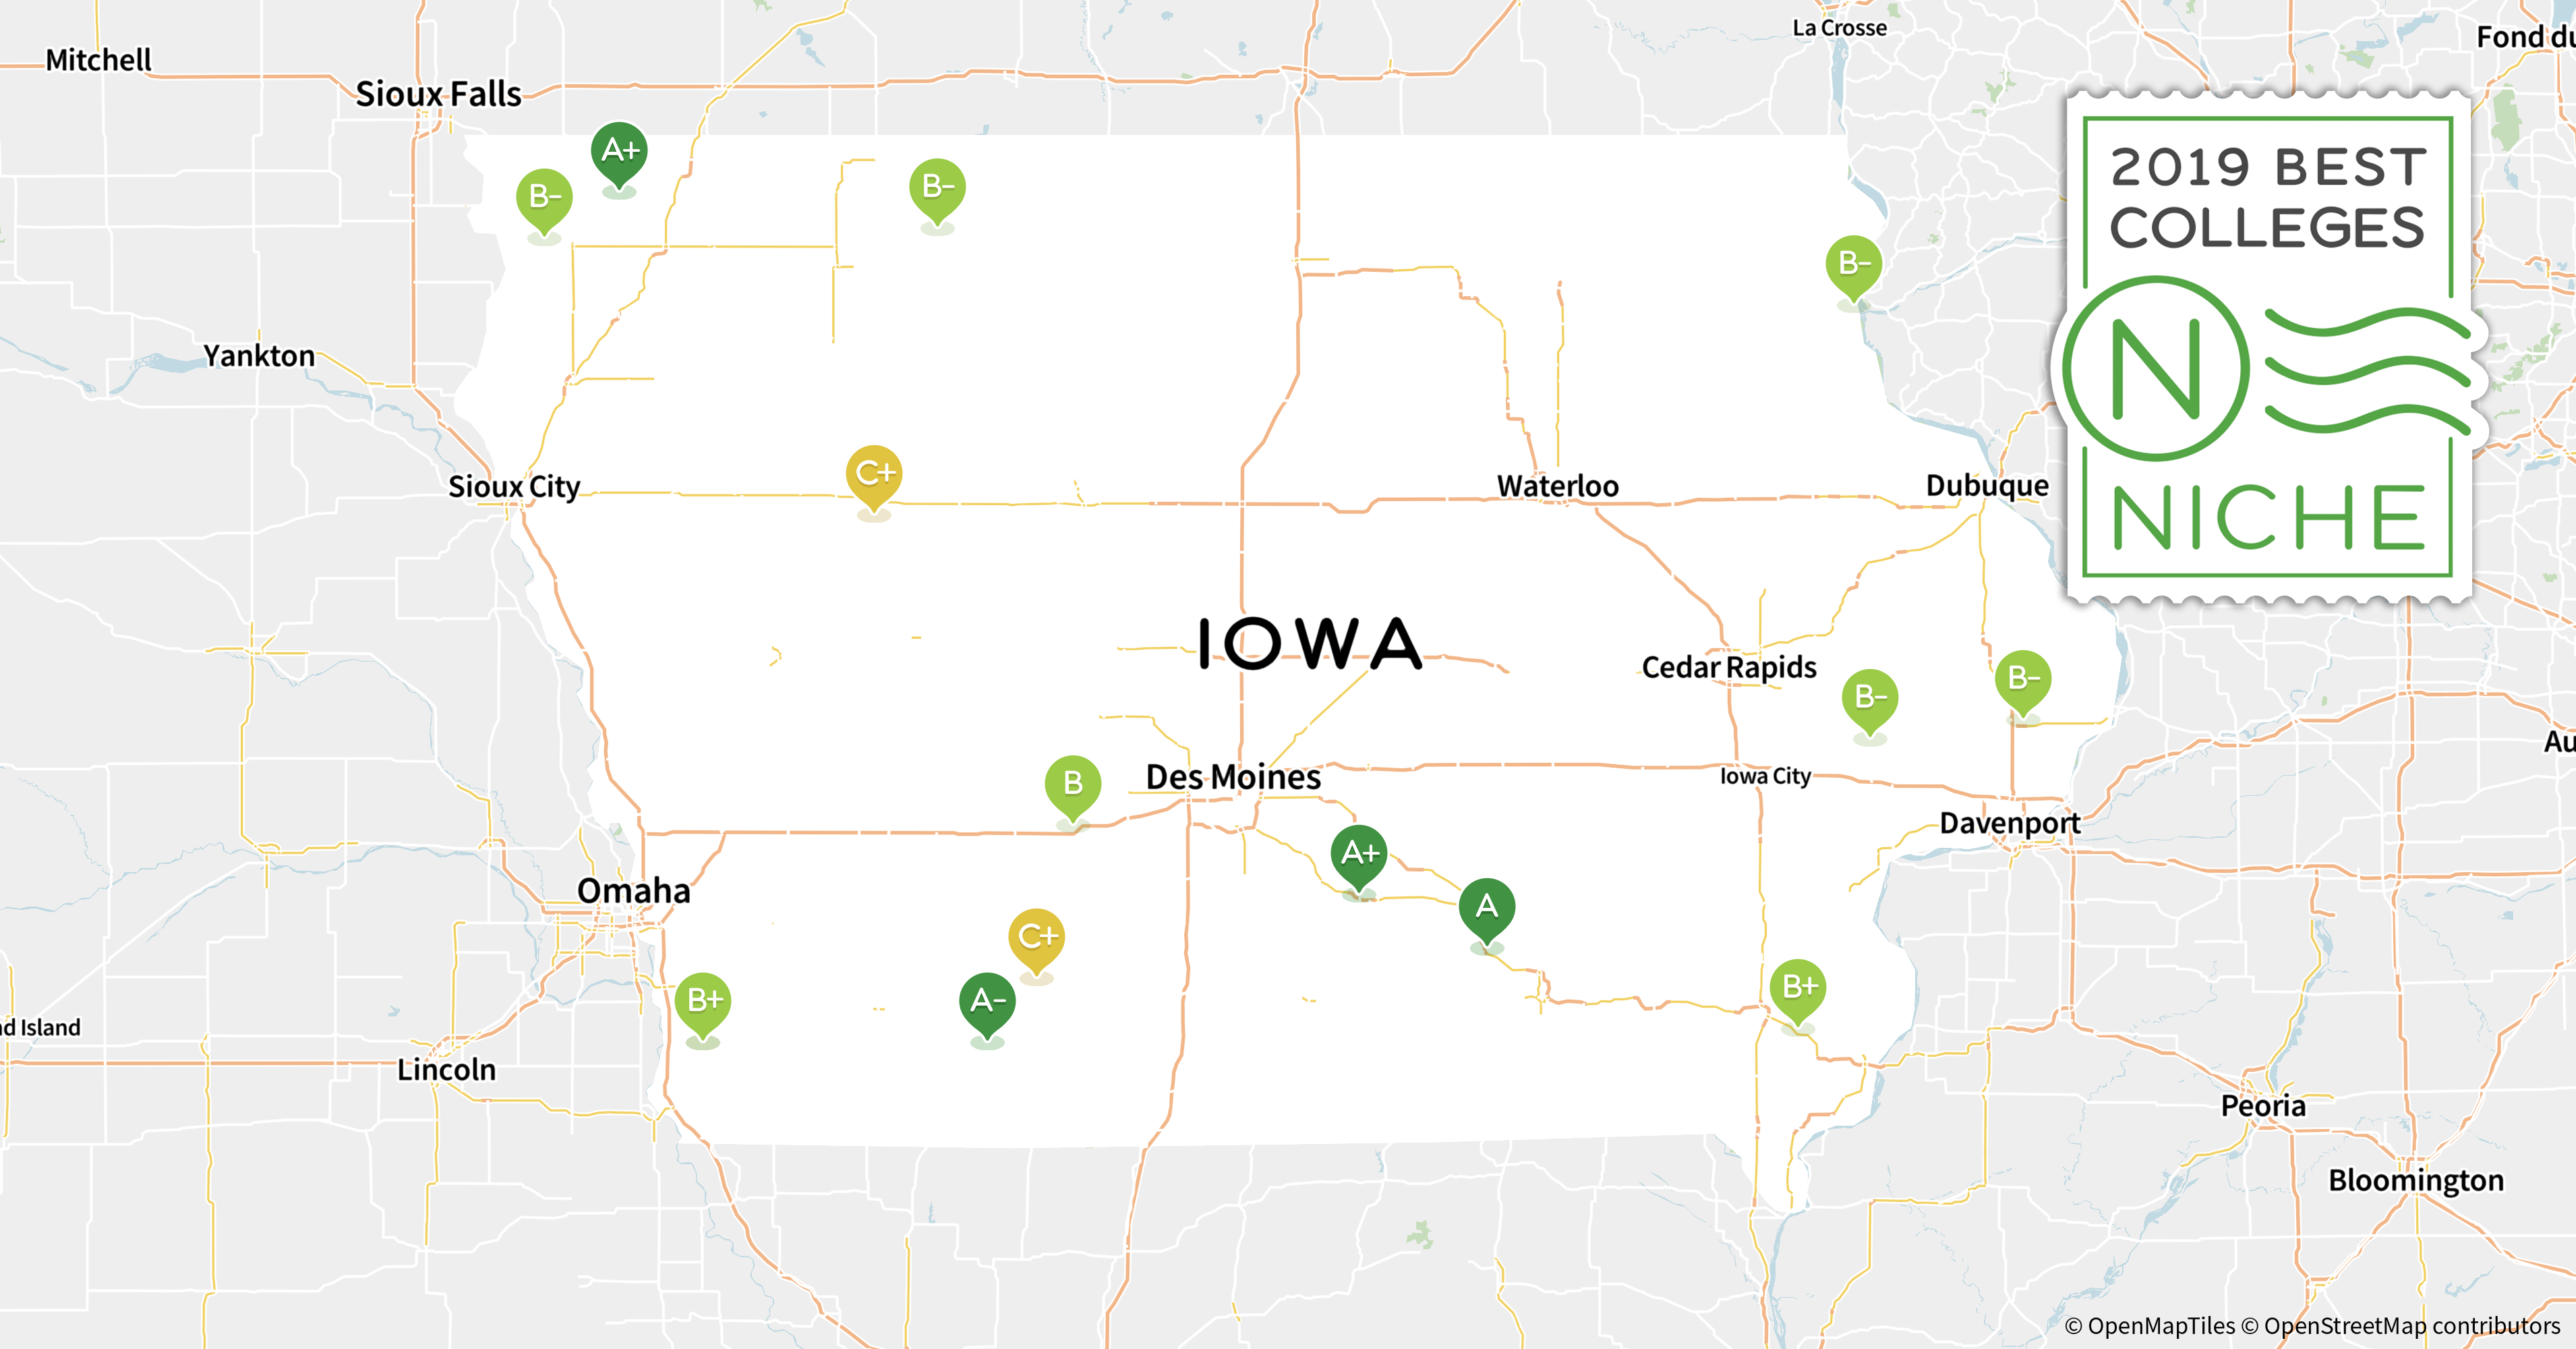 Morningside College Campus Map.2019 Best Colleges In Iowa Niche